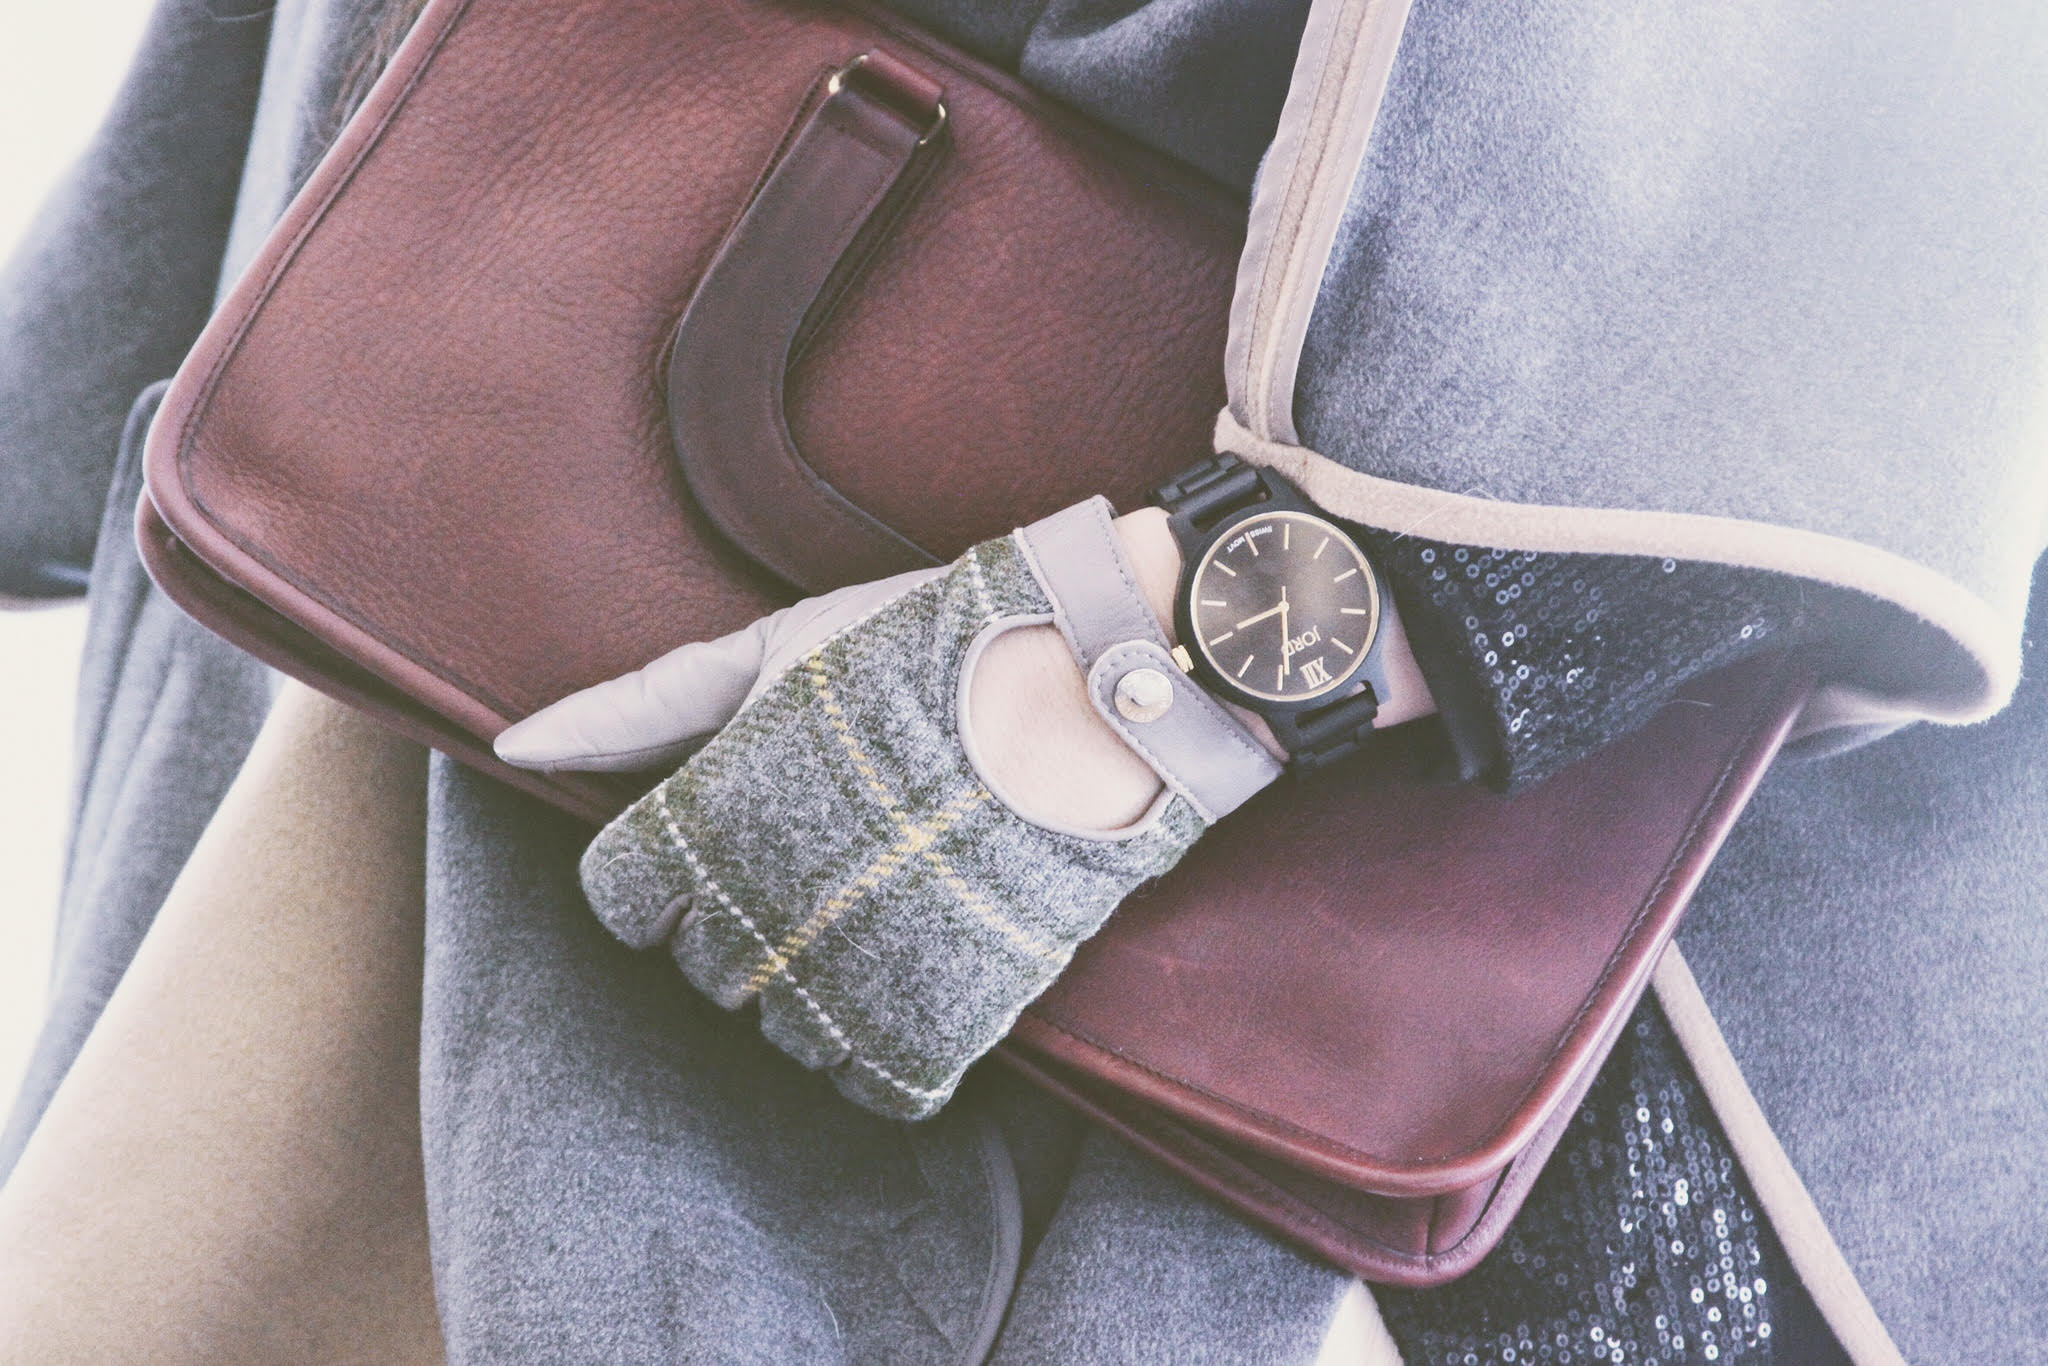 """""""The value of a watch is not in being able to tell how much time has passed, but in being aware of the need to make that time count. Moments are bigger than minutes and your watch should tell more than time."""" --JORD"""